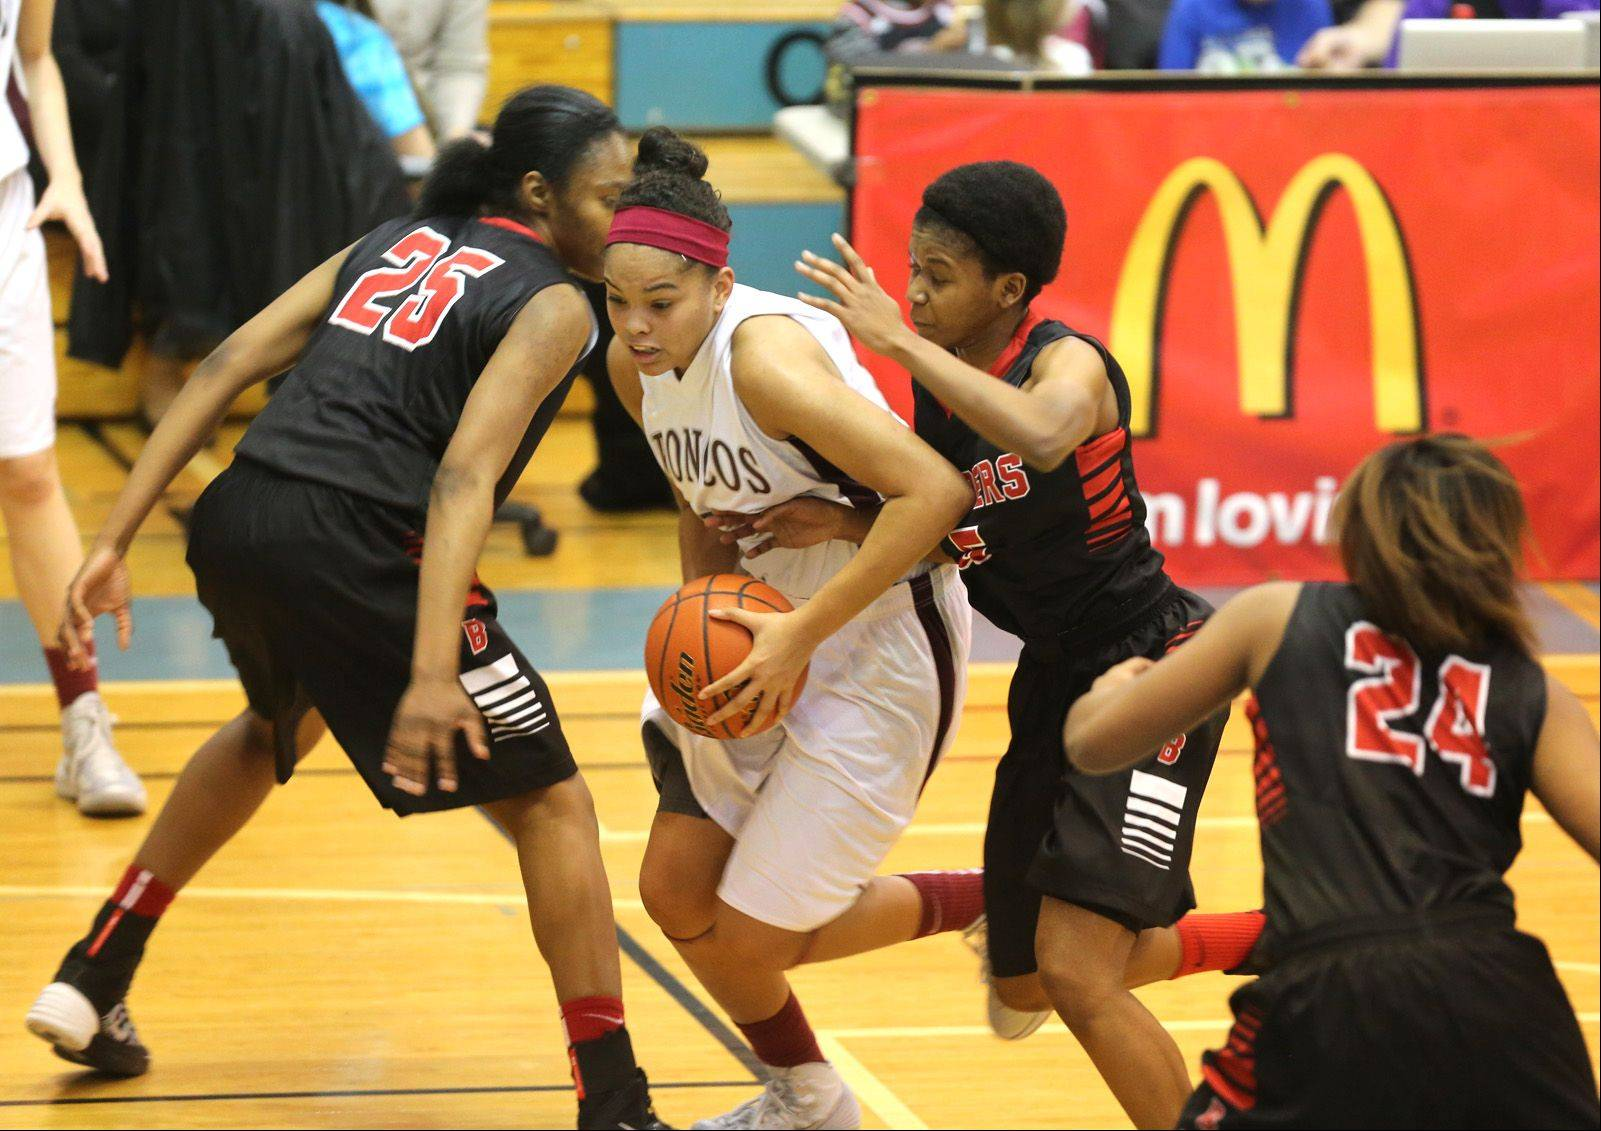 Montini battles Bolingbrook during the 24th annual McDonald's Shootout, a girls basketball tournament at Willowbrook High School.